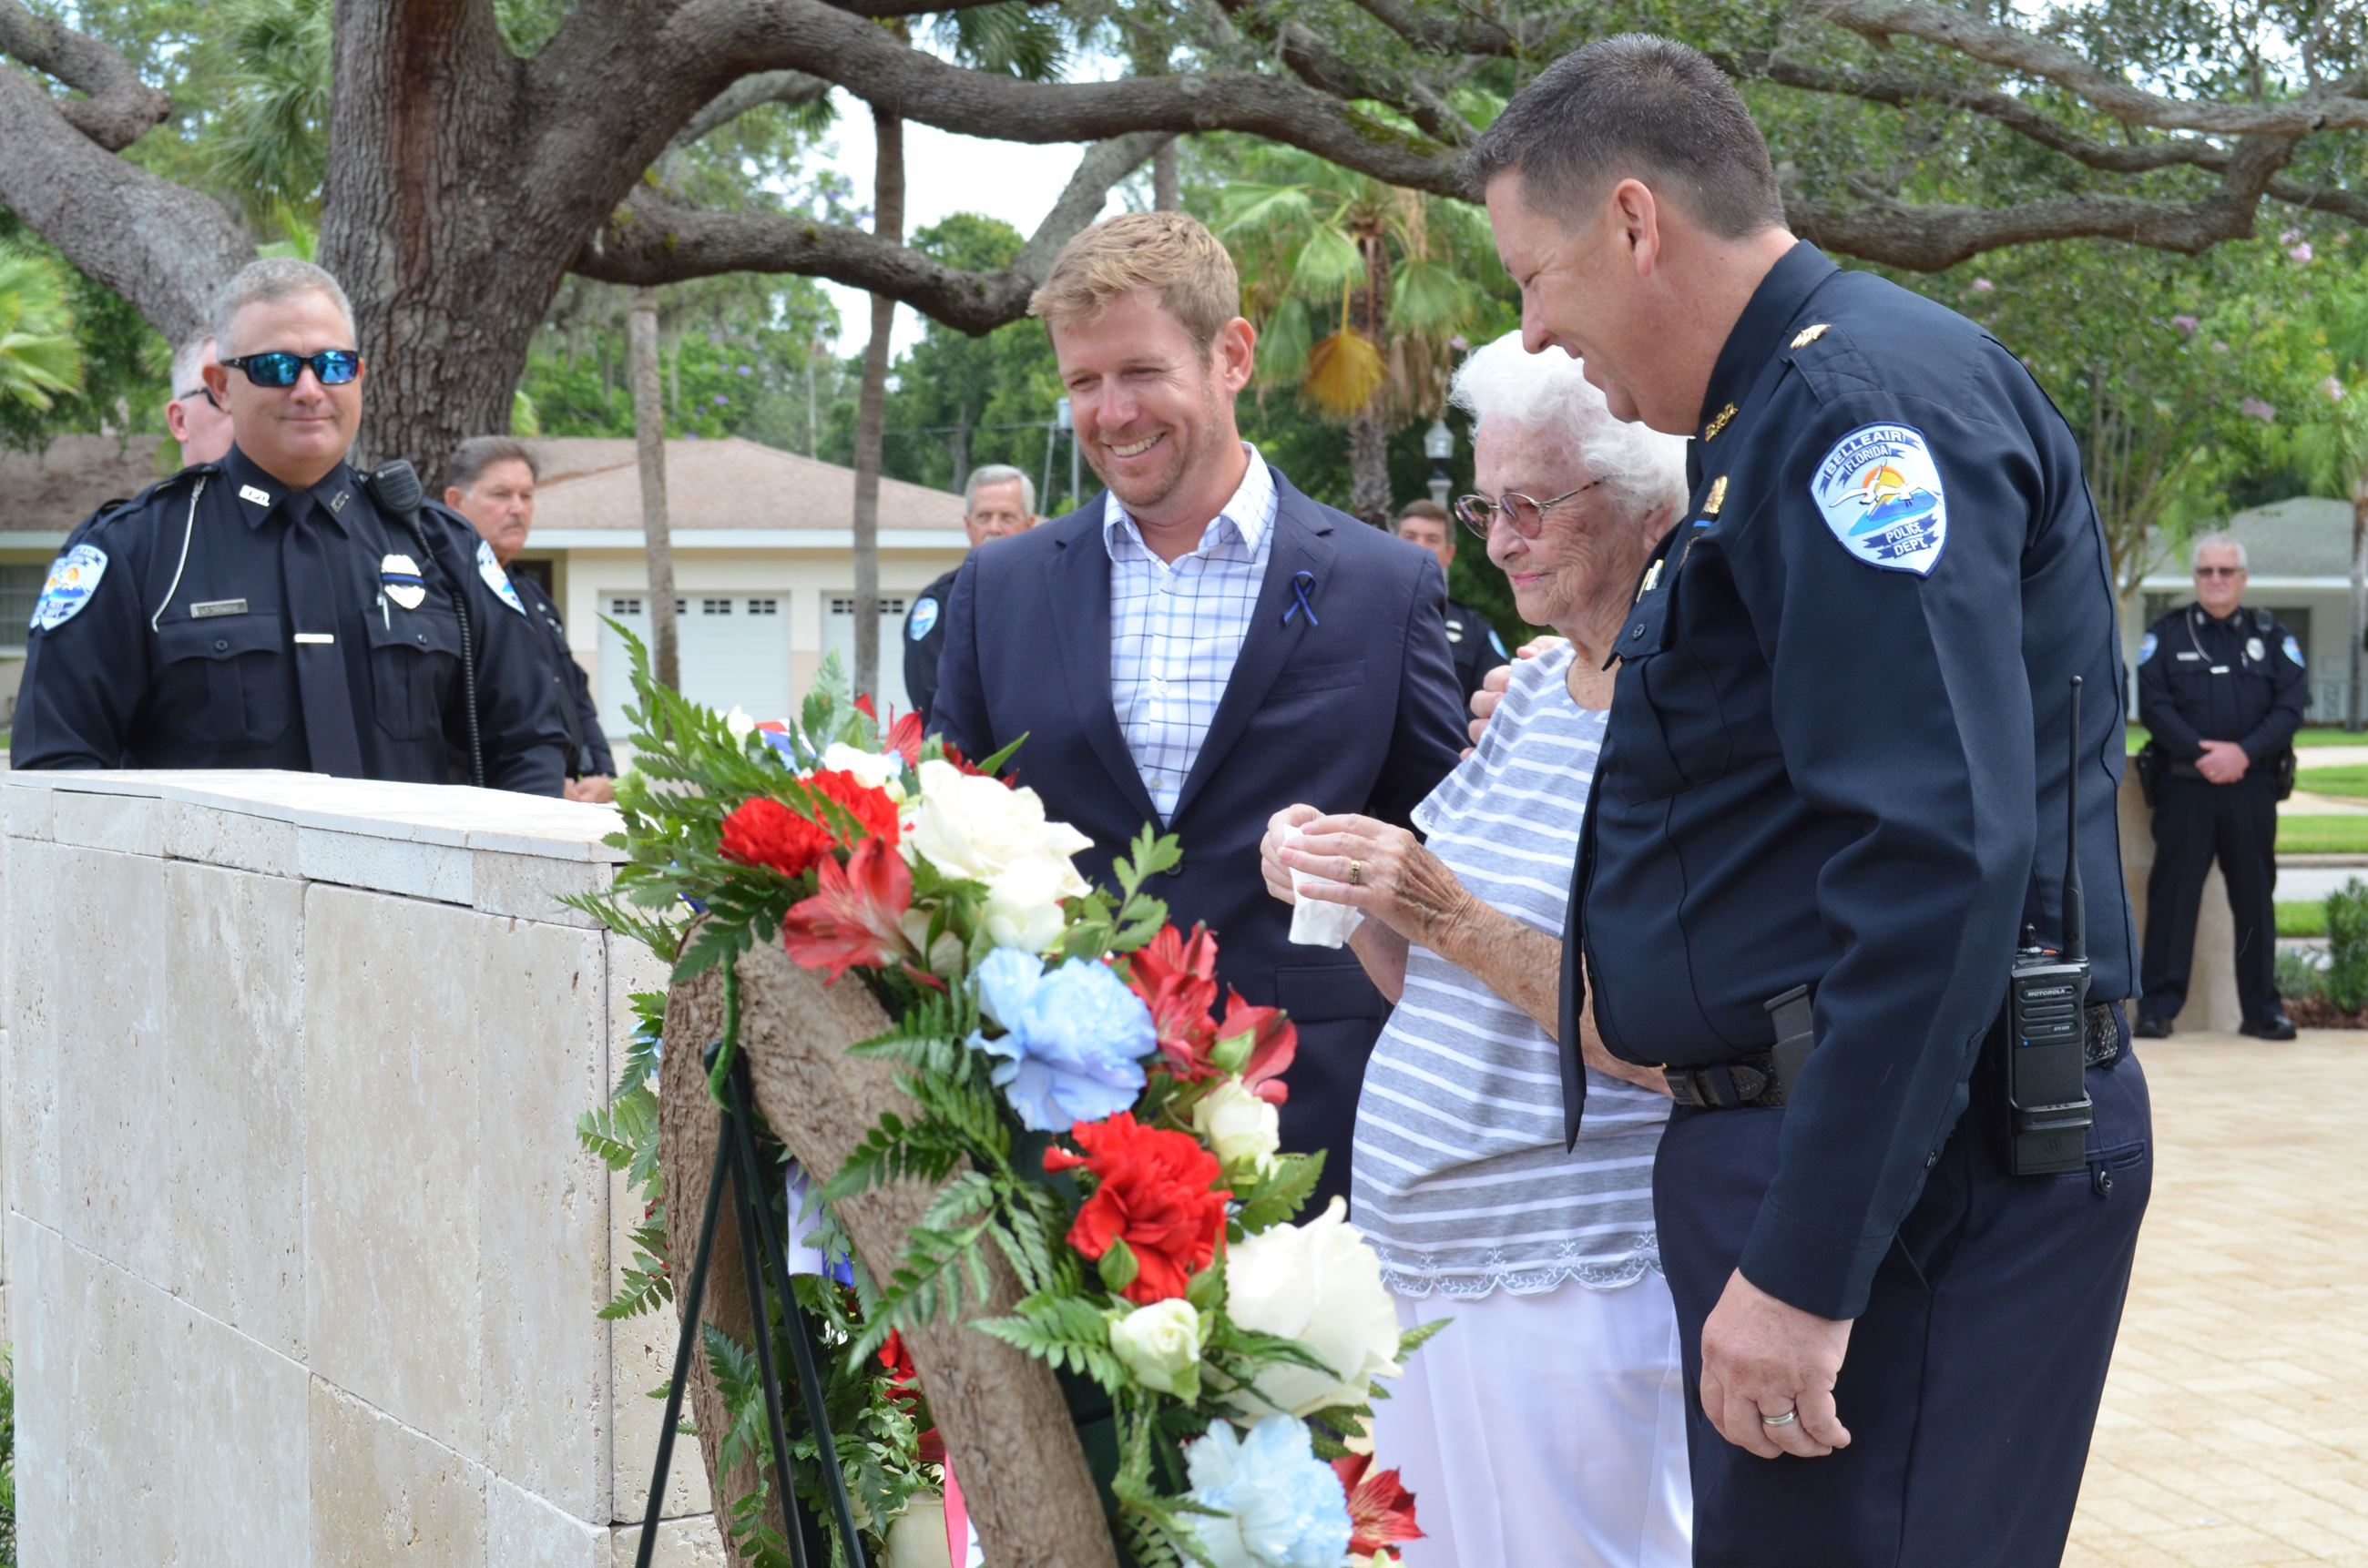 Two Police Officers, Town Employee and Lady looking at memorial plaque in Tackett Park.